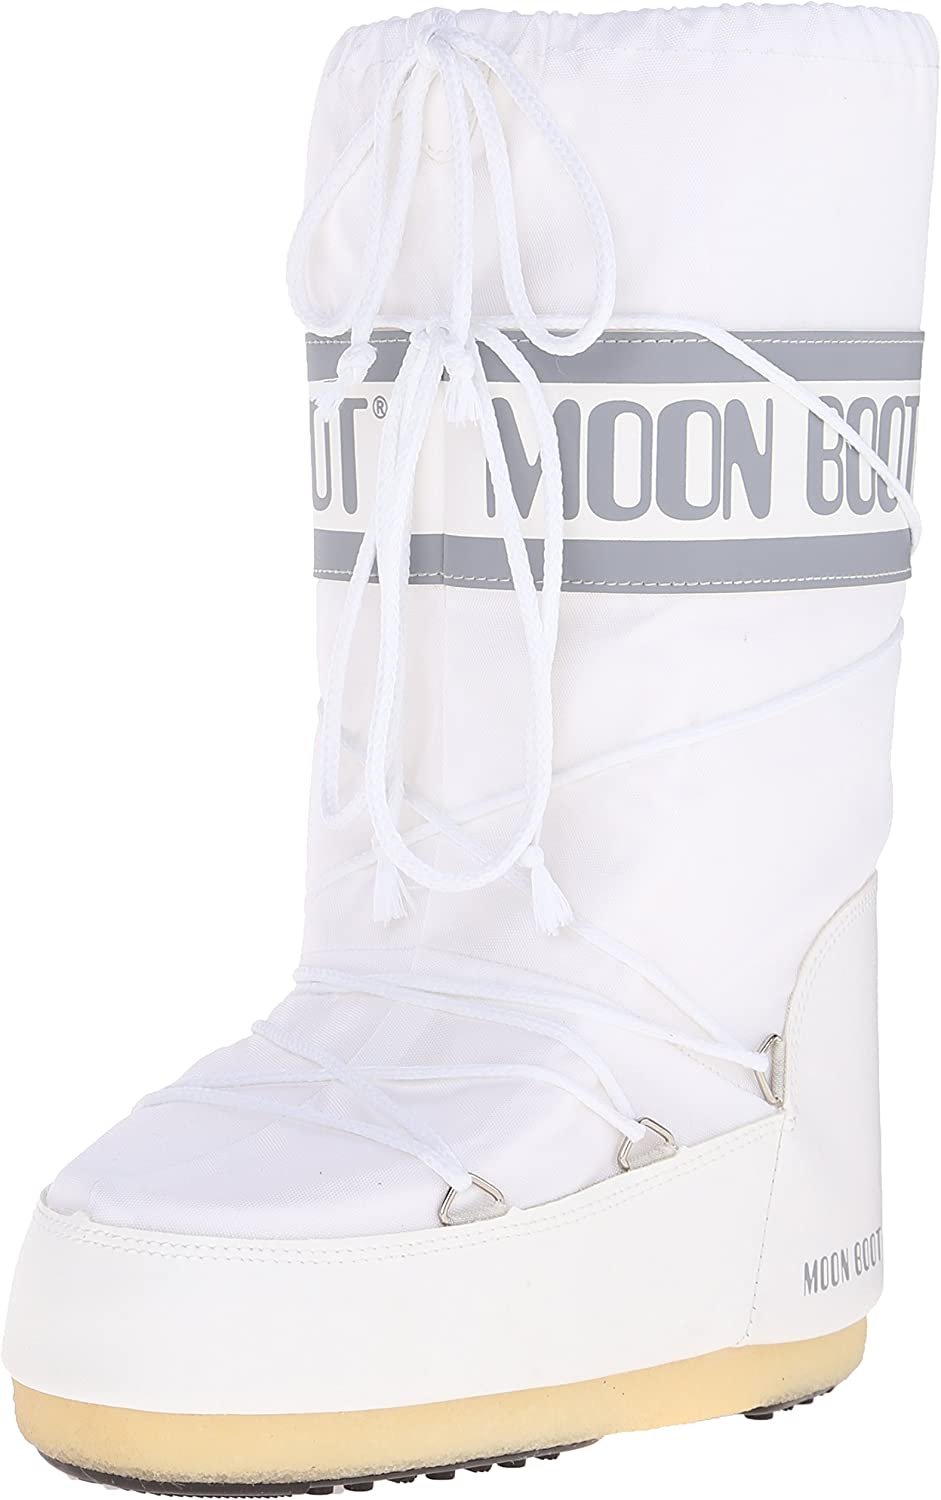 MOON BOOT Nylon, Botas de Nieve Unisex Adulto, Blanco (White 6), 39-41 EU